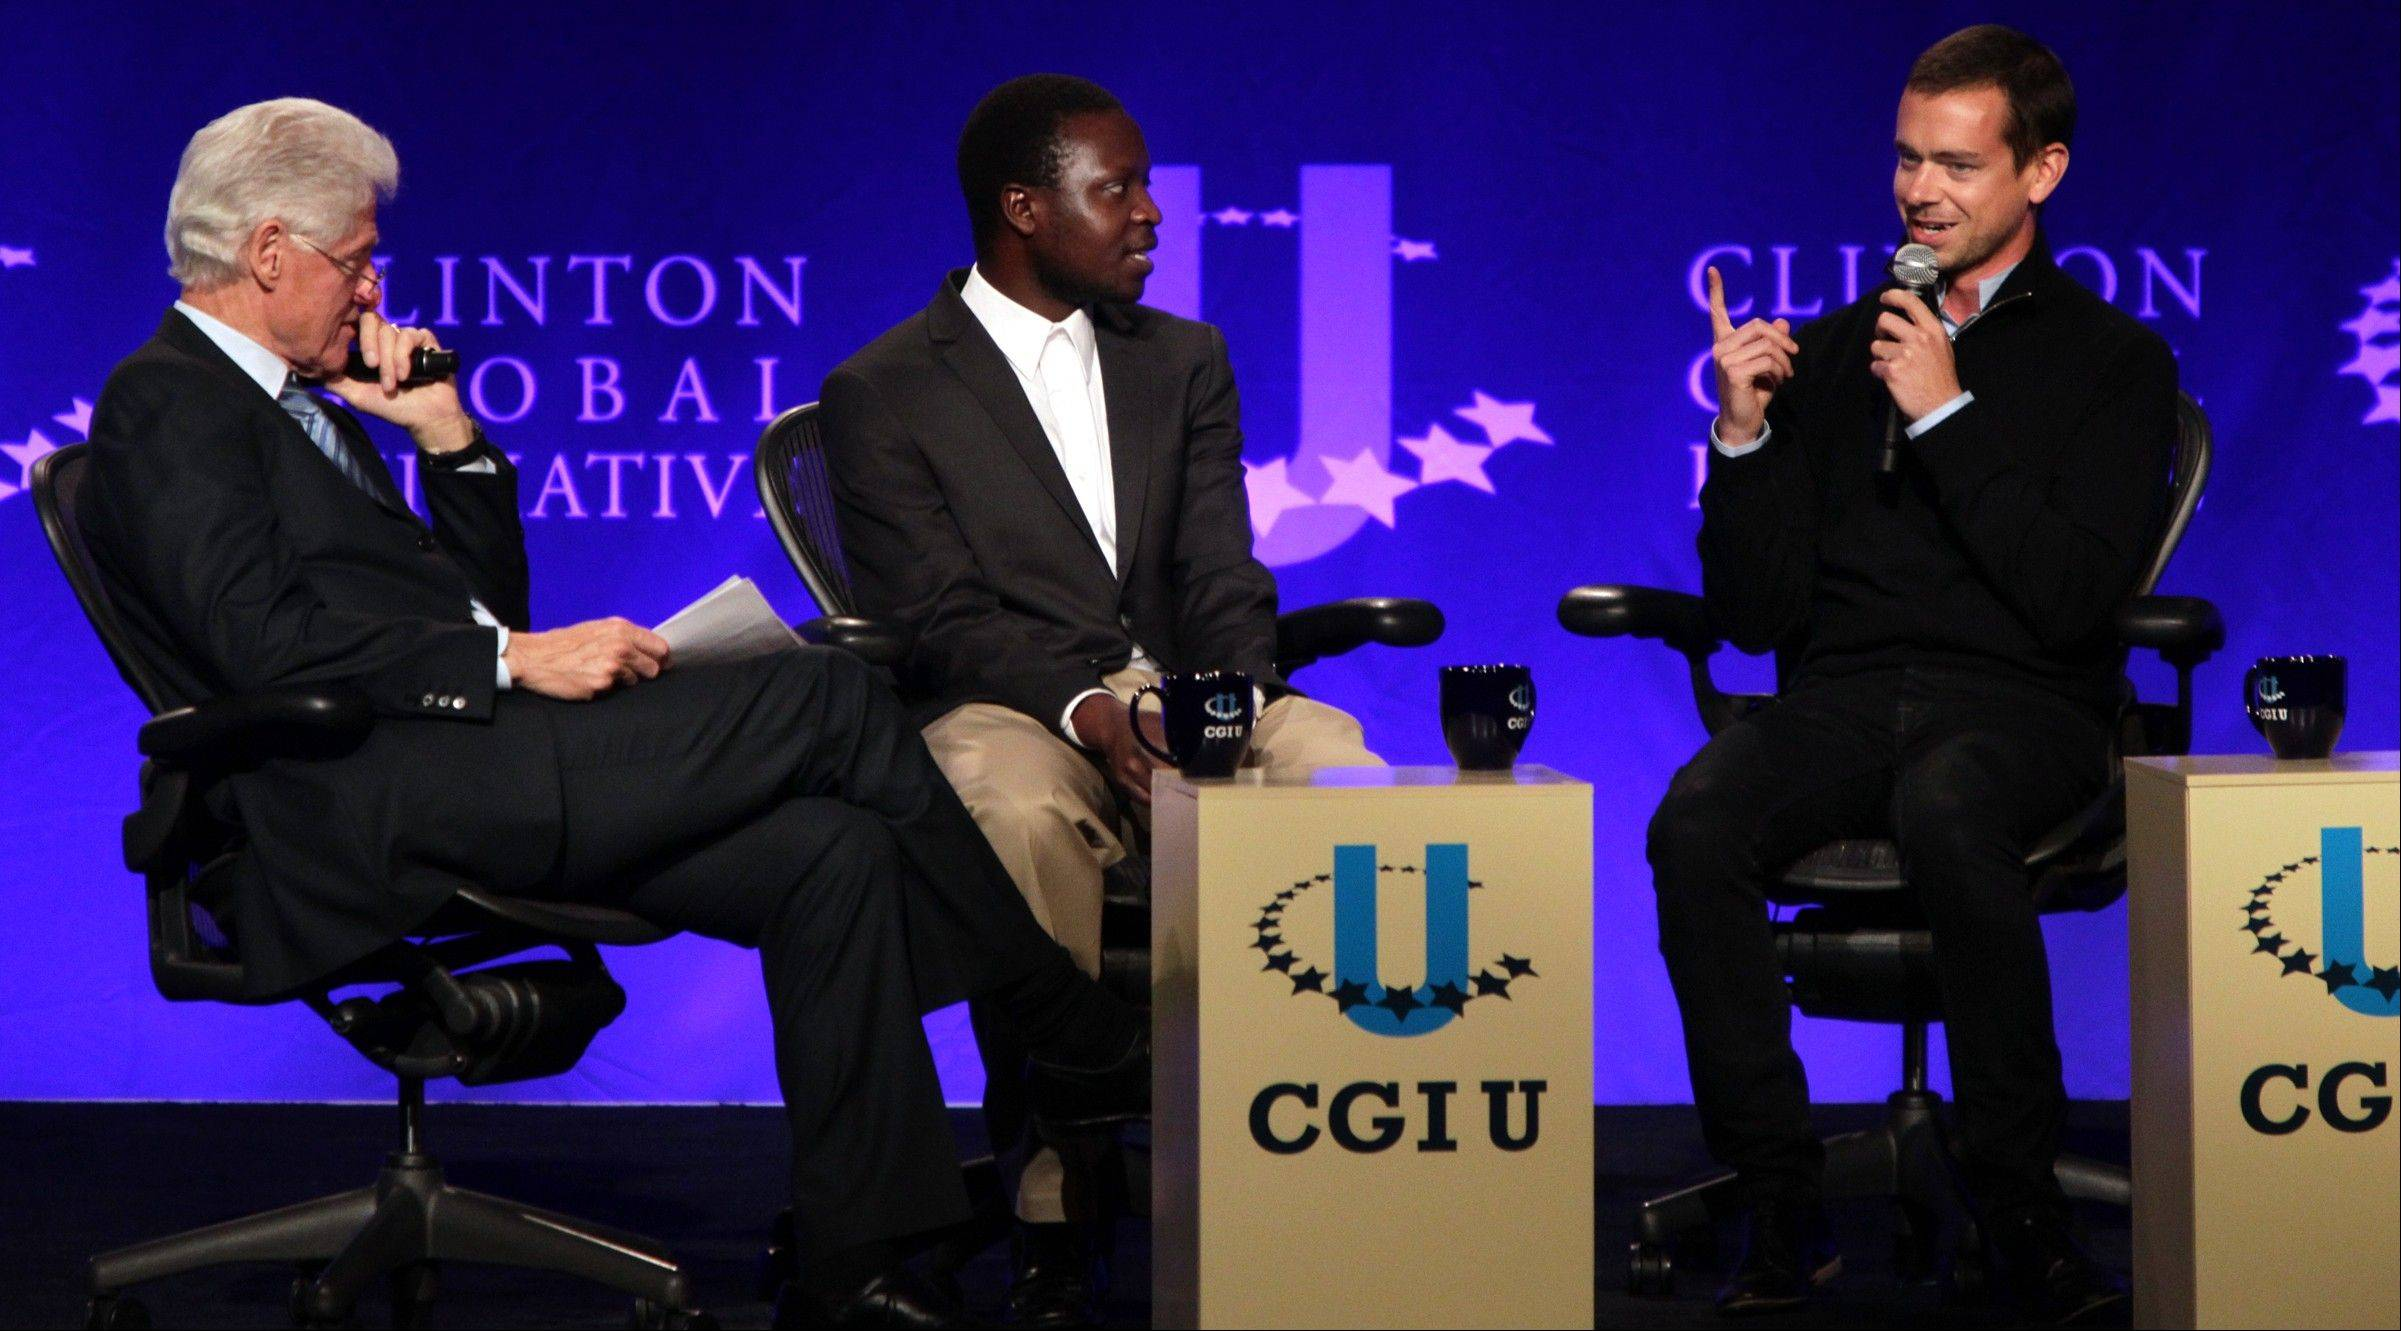 Former President Bill Clinton, left, listens as Twitter co-founder Jack Dorsey, right, explains his work with Square during the opening session of the Clinton Global Initiative at Washington University in St. Louis on Friday, April 5. Malawian inventor William Kamkwamba listens at center.